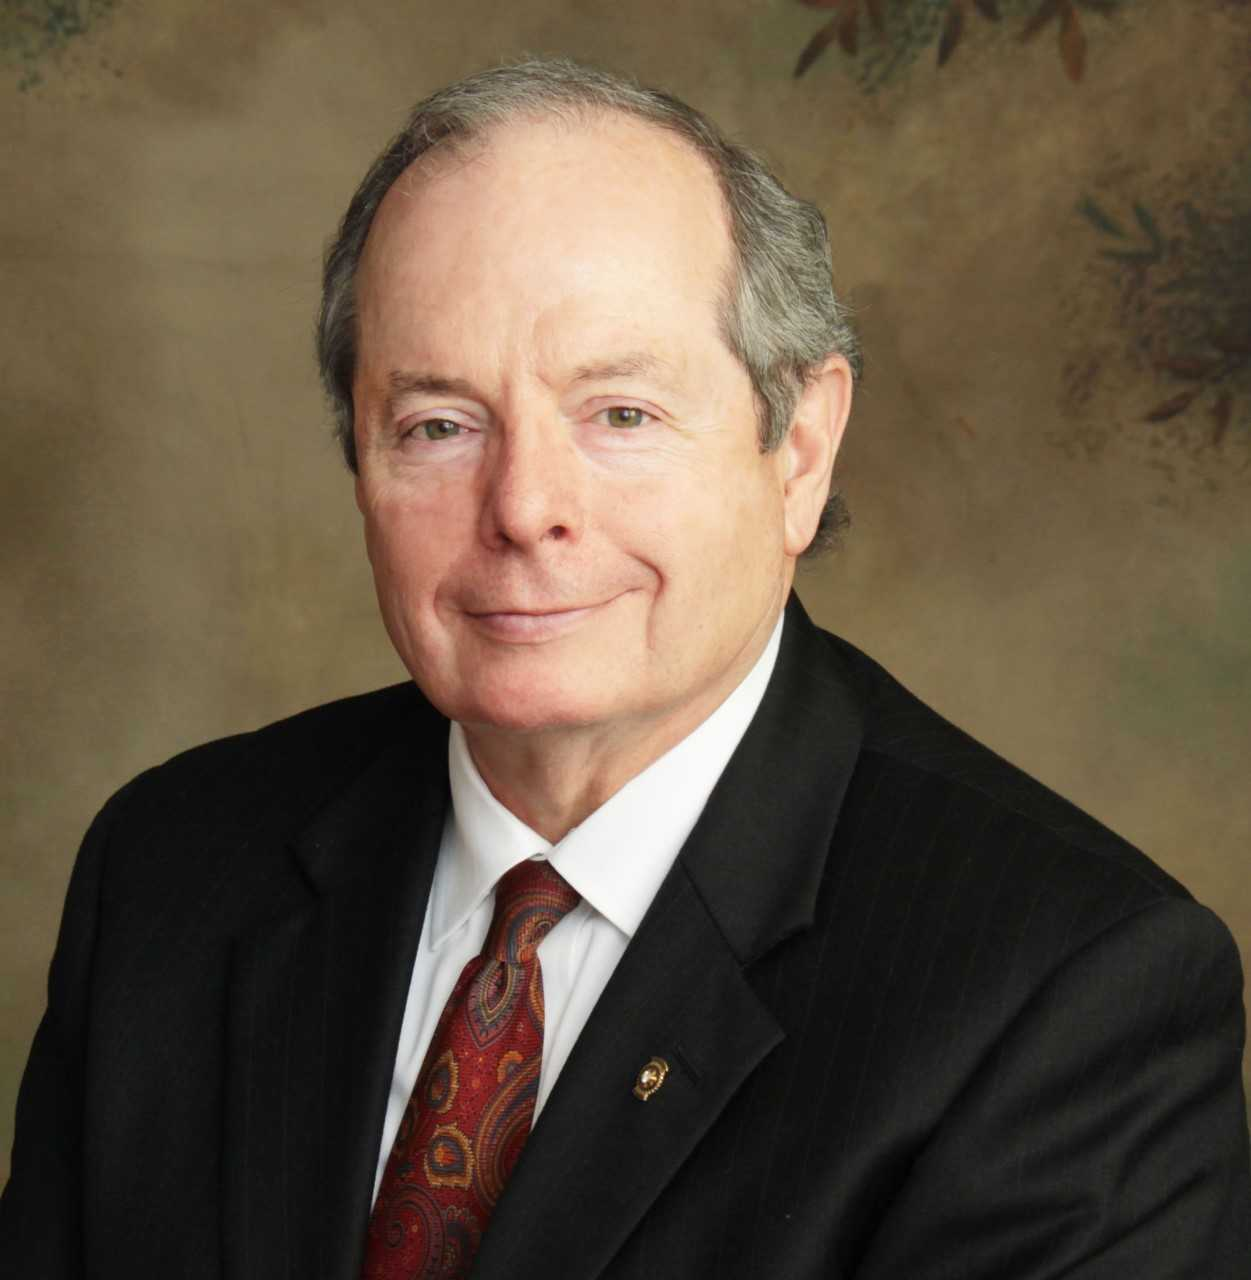 GNTC President Pete McDonald Announces Retirement